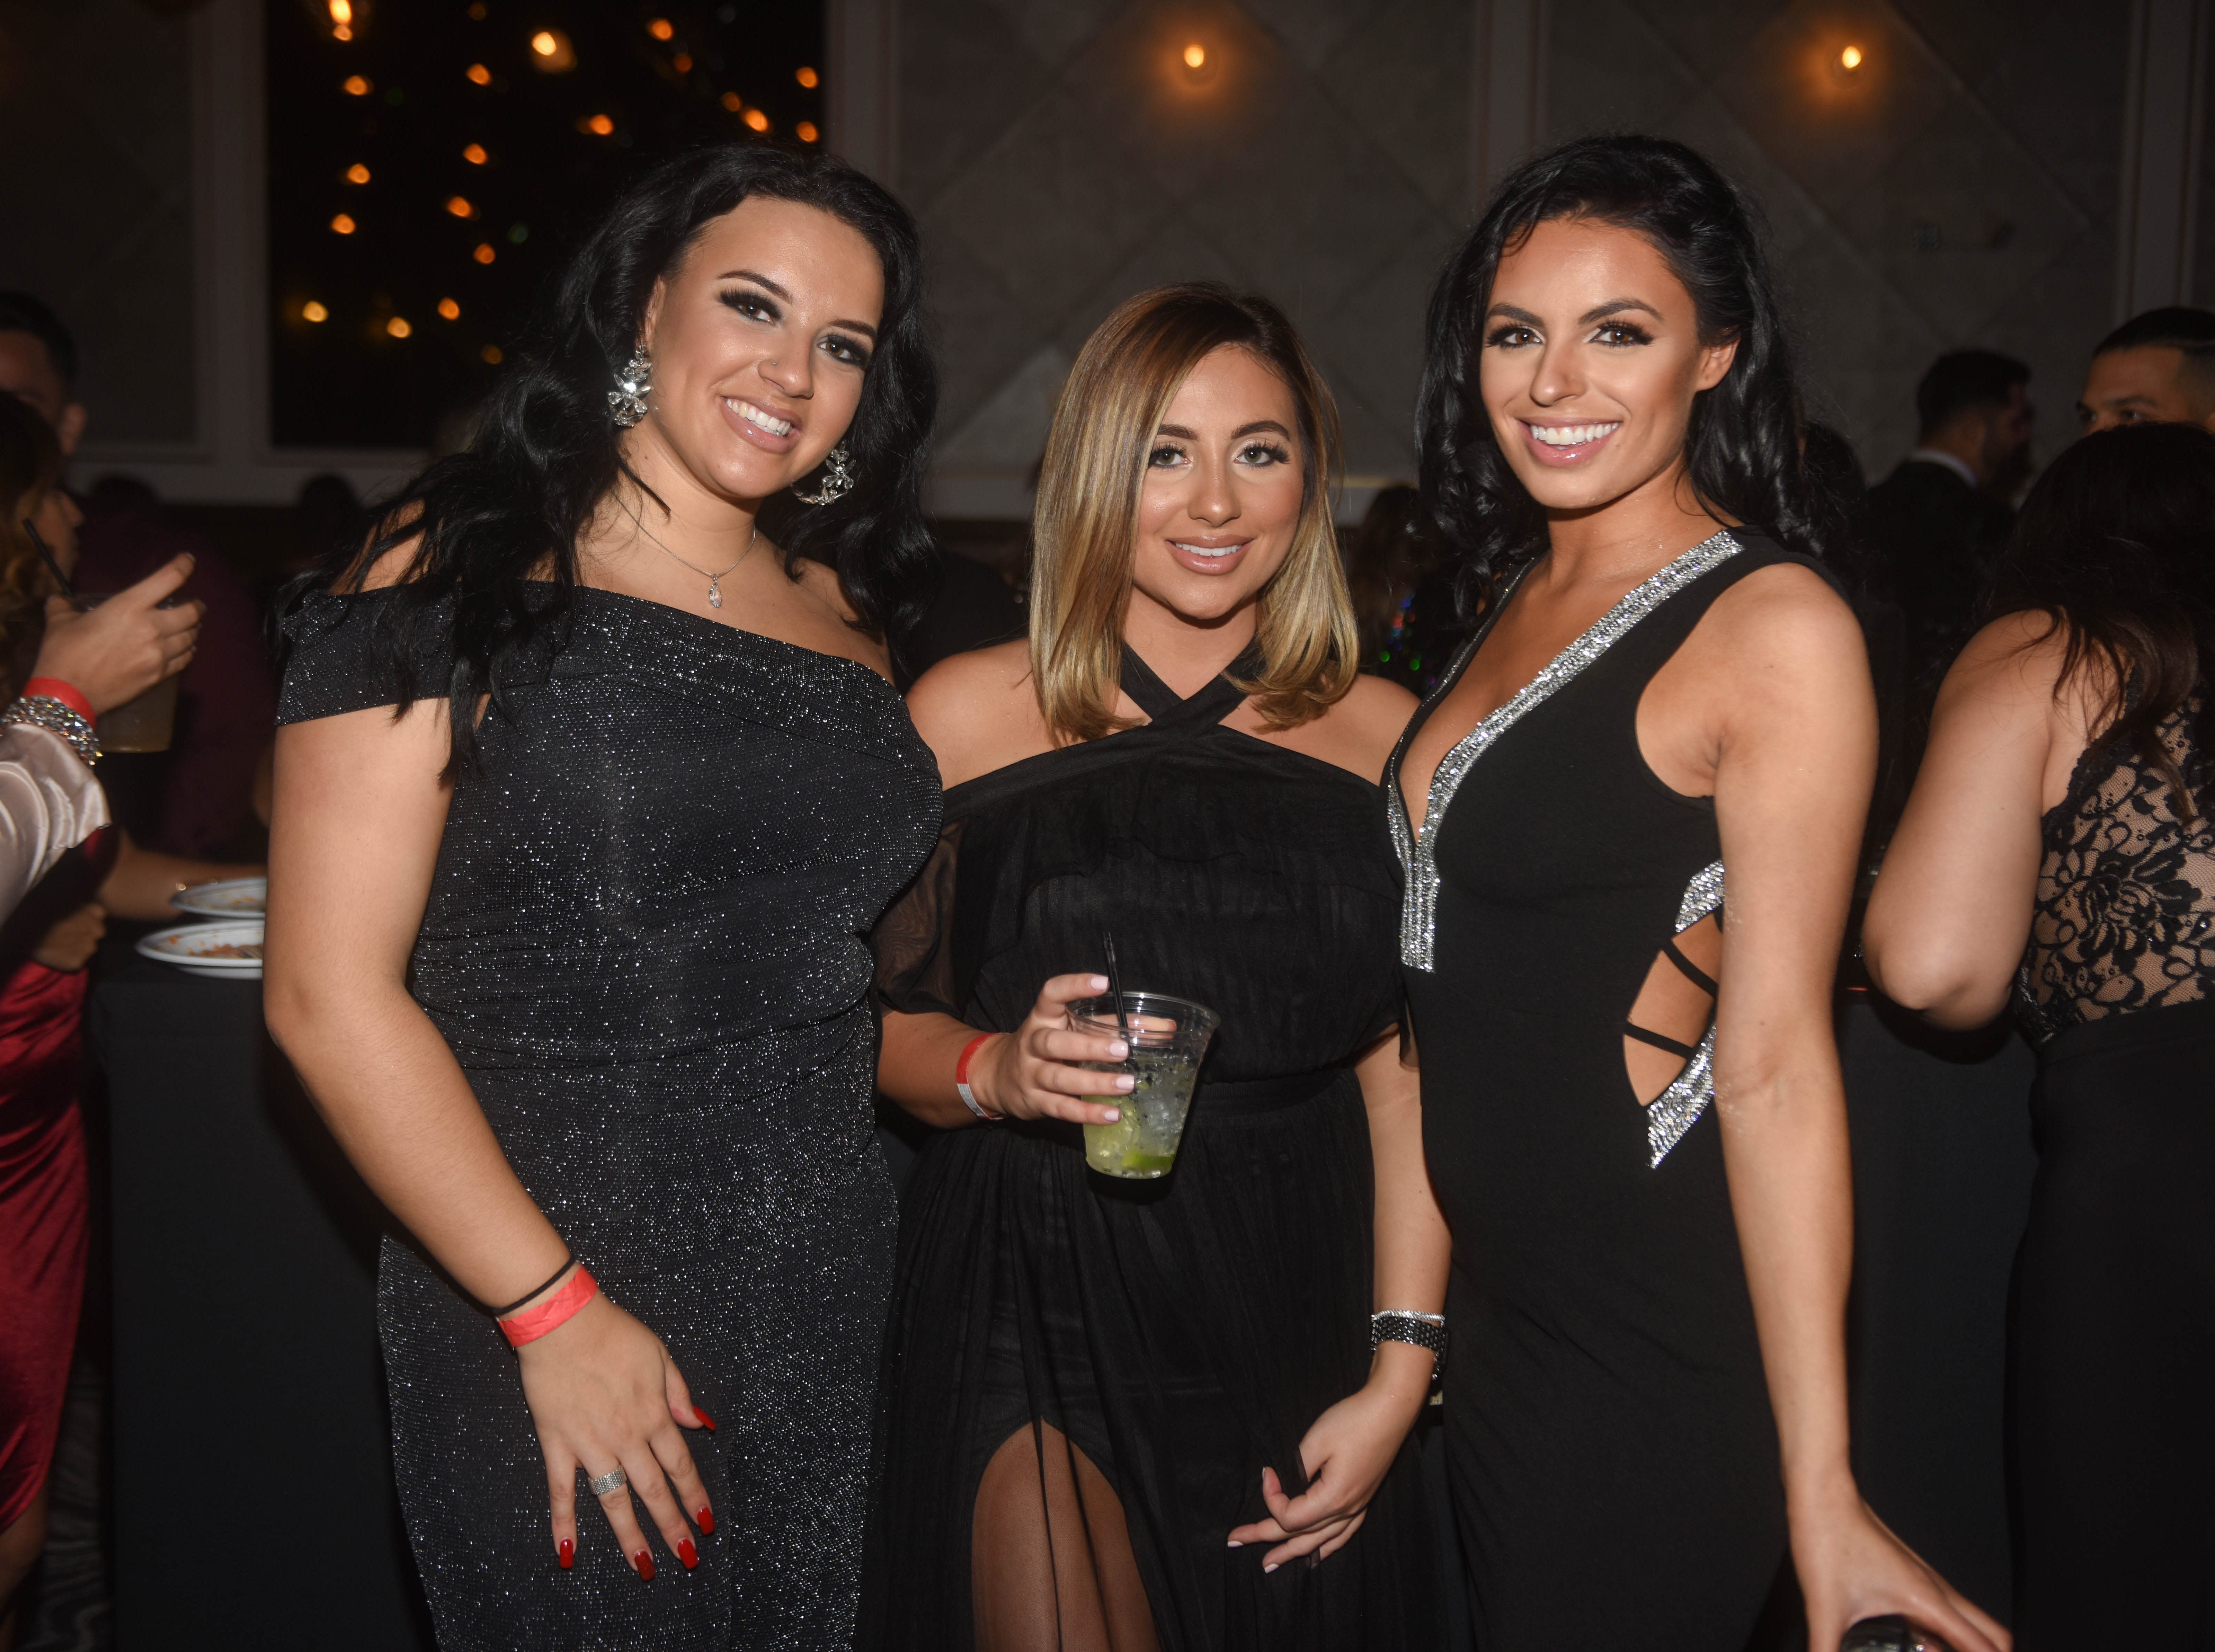 The Atelier Ballroom in Jersey City rang in 2019 with their Midnight Ball NYE Black Tie Affair. 12/31/2018